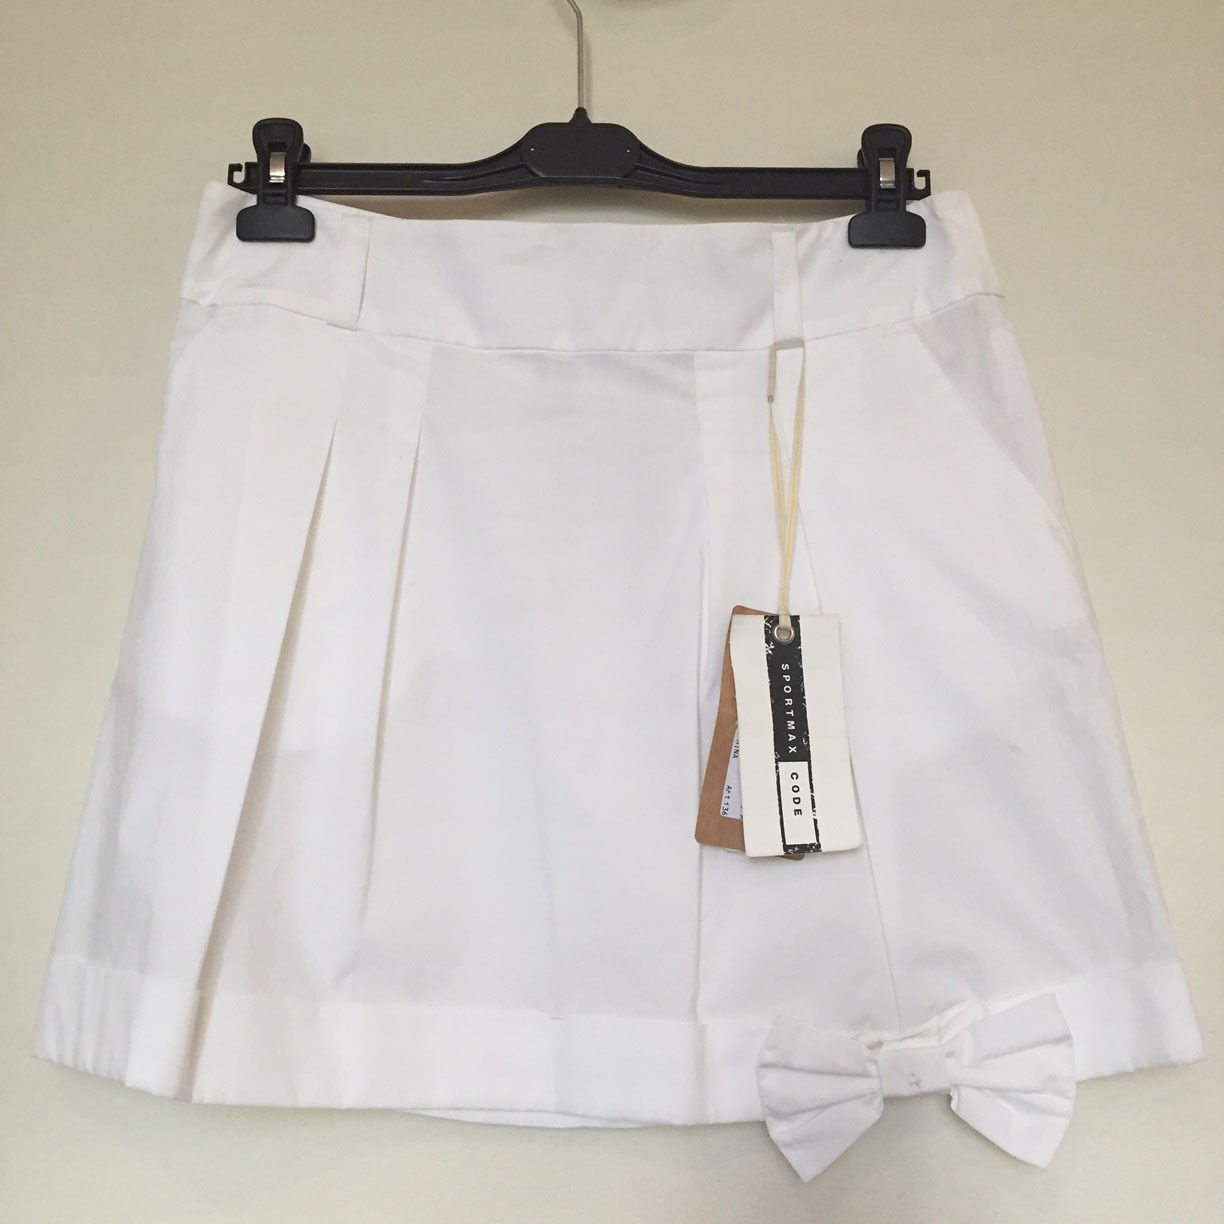 NWT designer SportMax white skirt with bow US 8 could fit 4-6 S MSRP